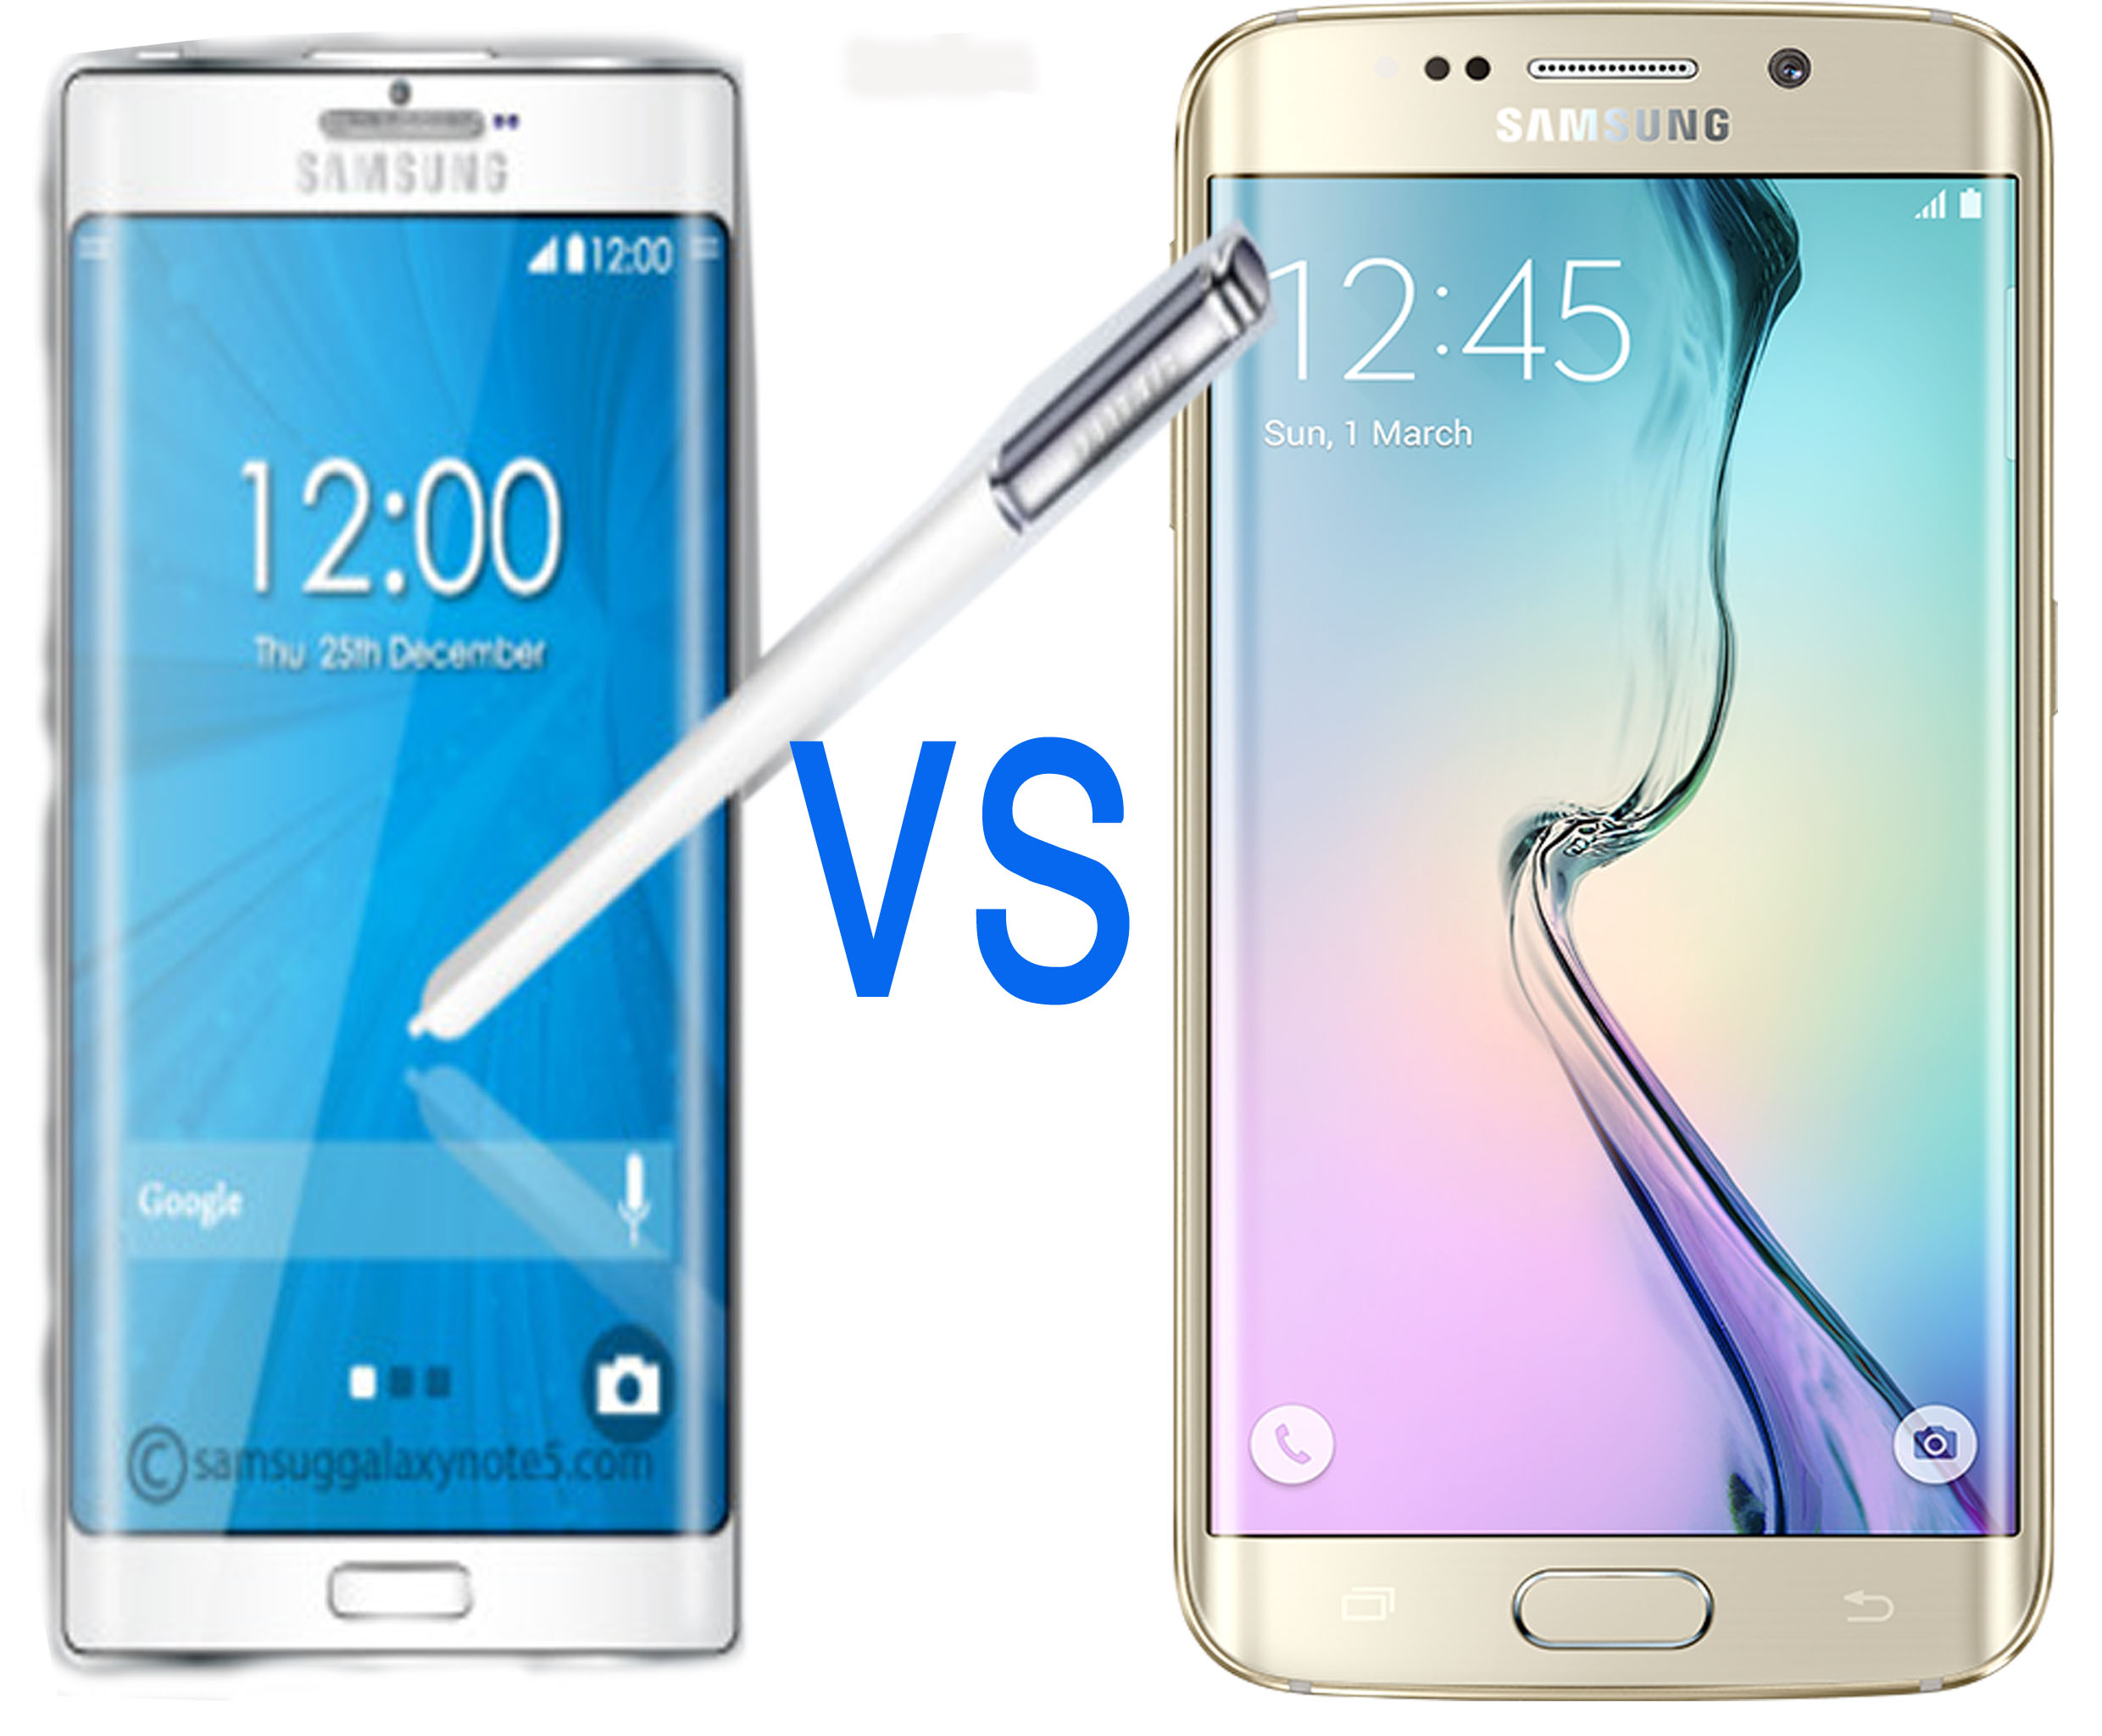 Samsung Note5 Vs Samsung S6 edge